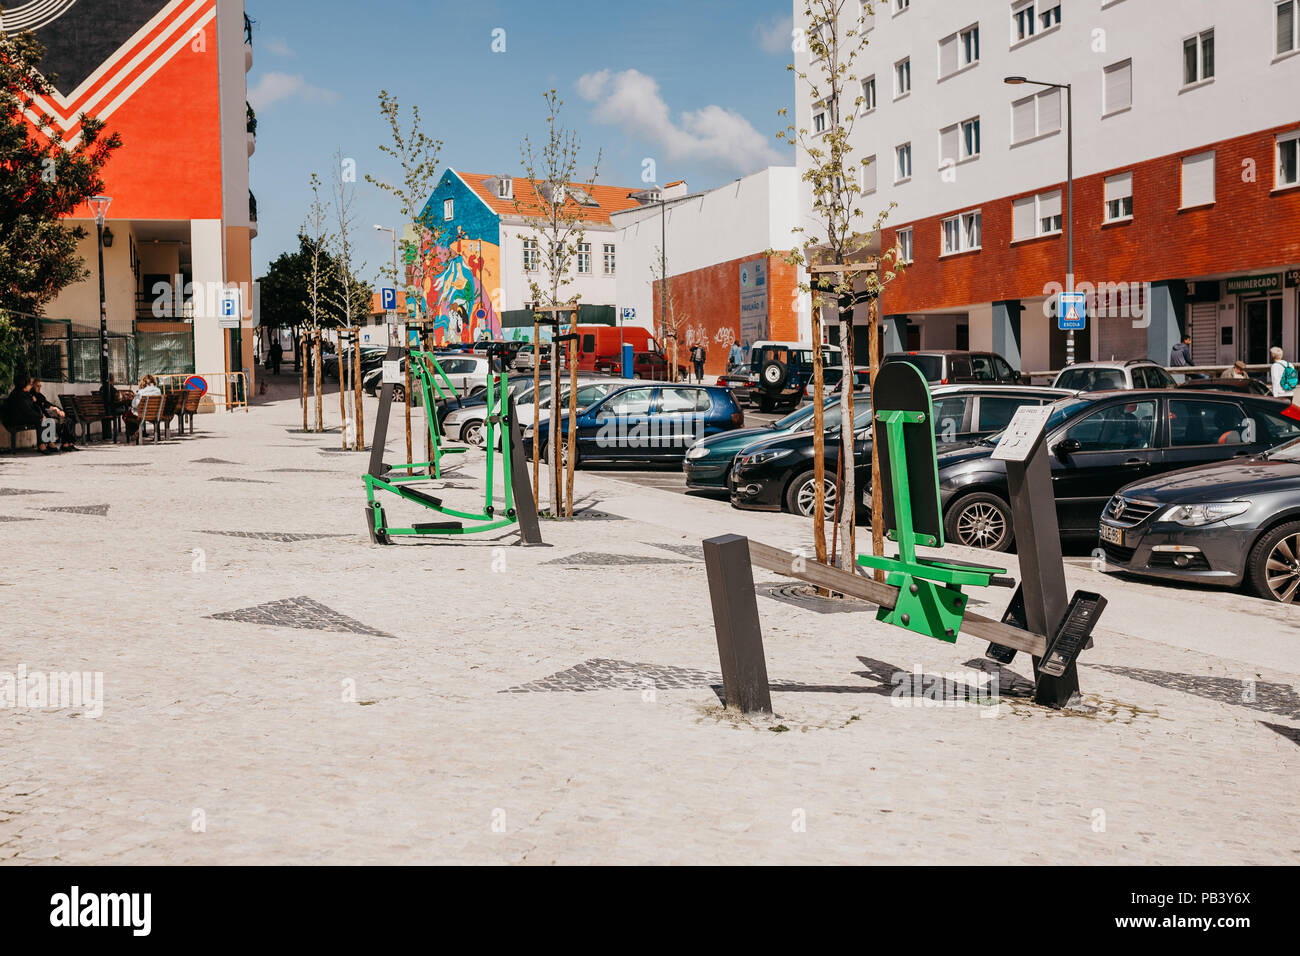 Portugal, Lisbon, 01 May 2018: Street sports exercise machines for exercising on a city street. - Stock Image